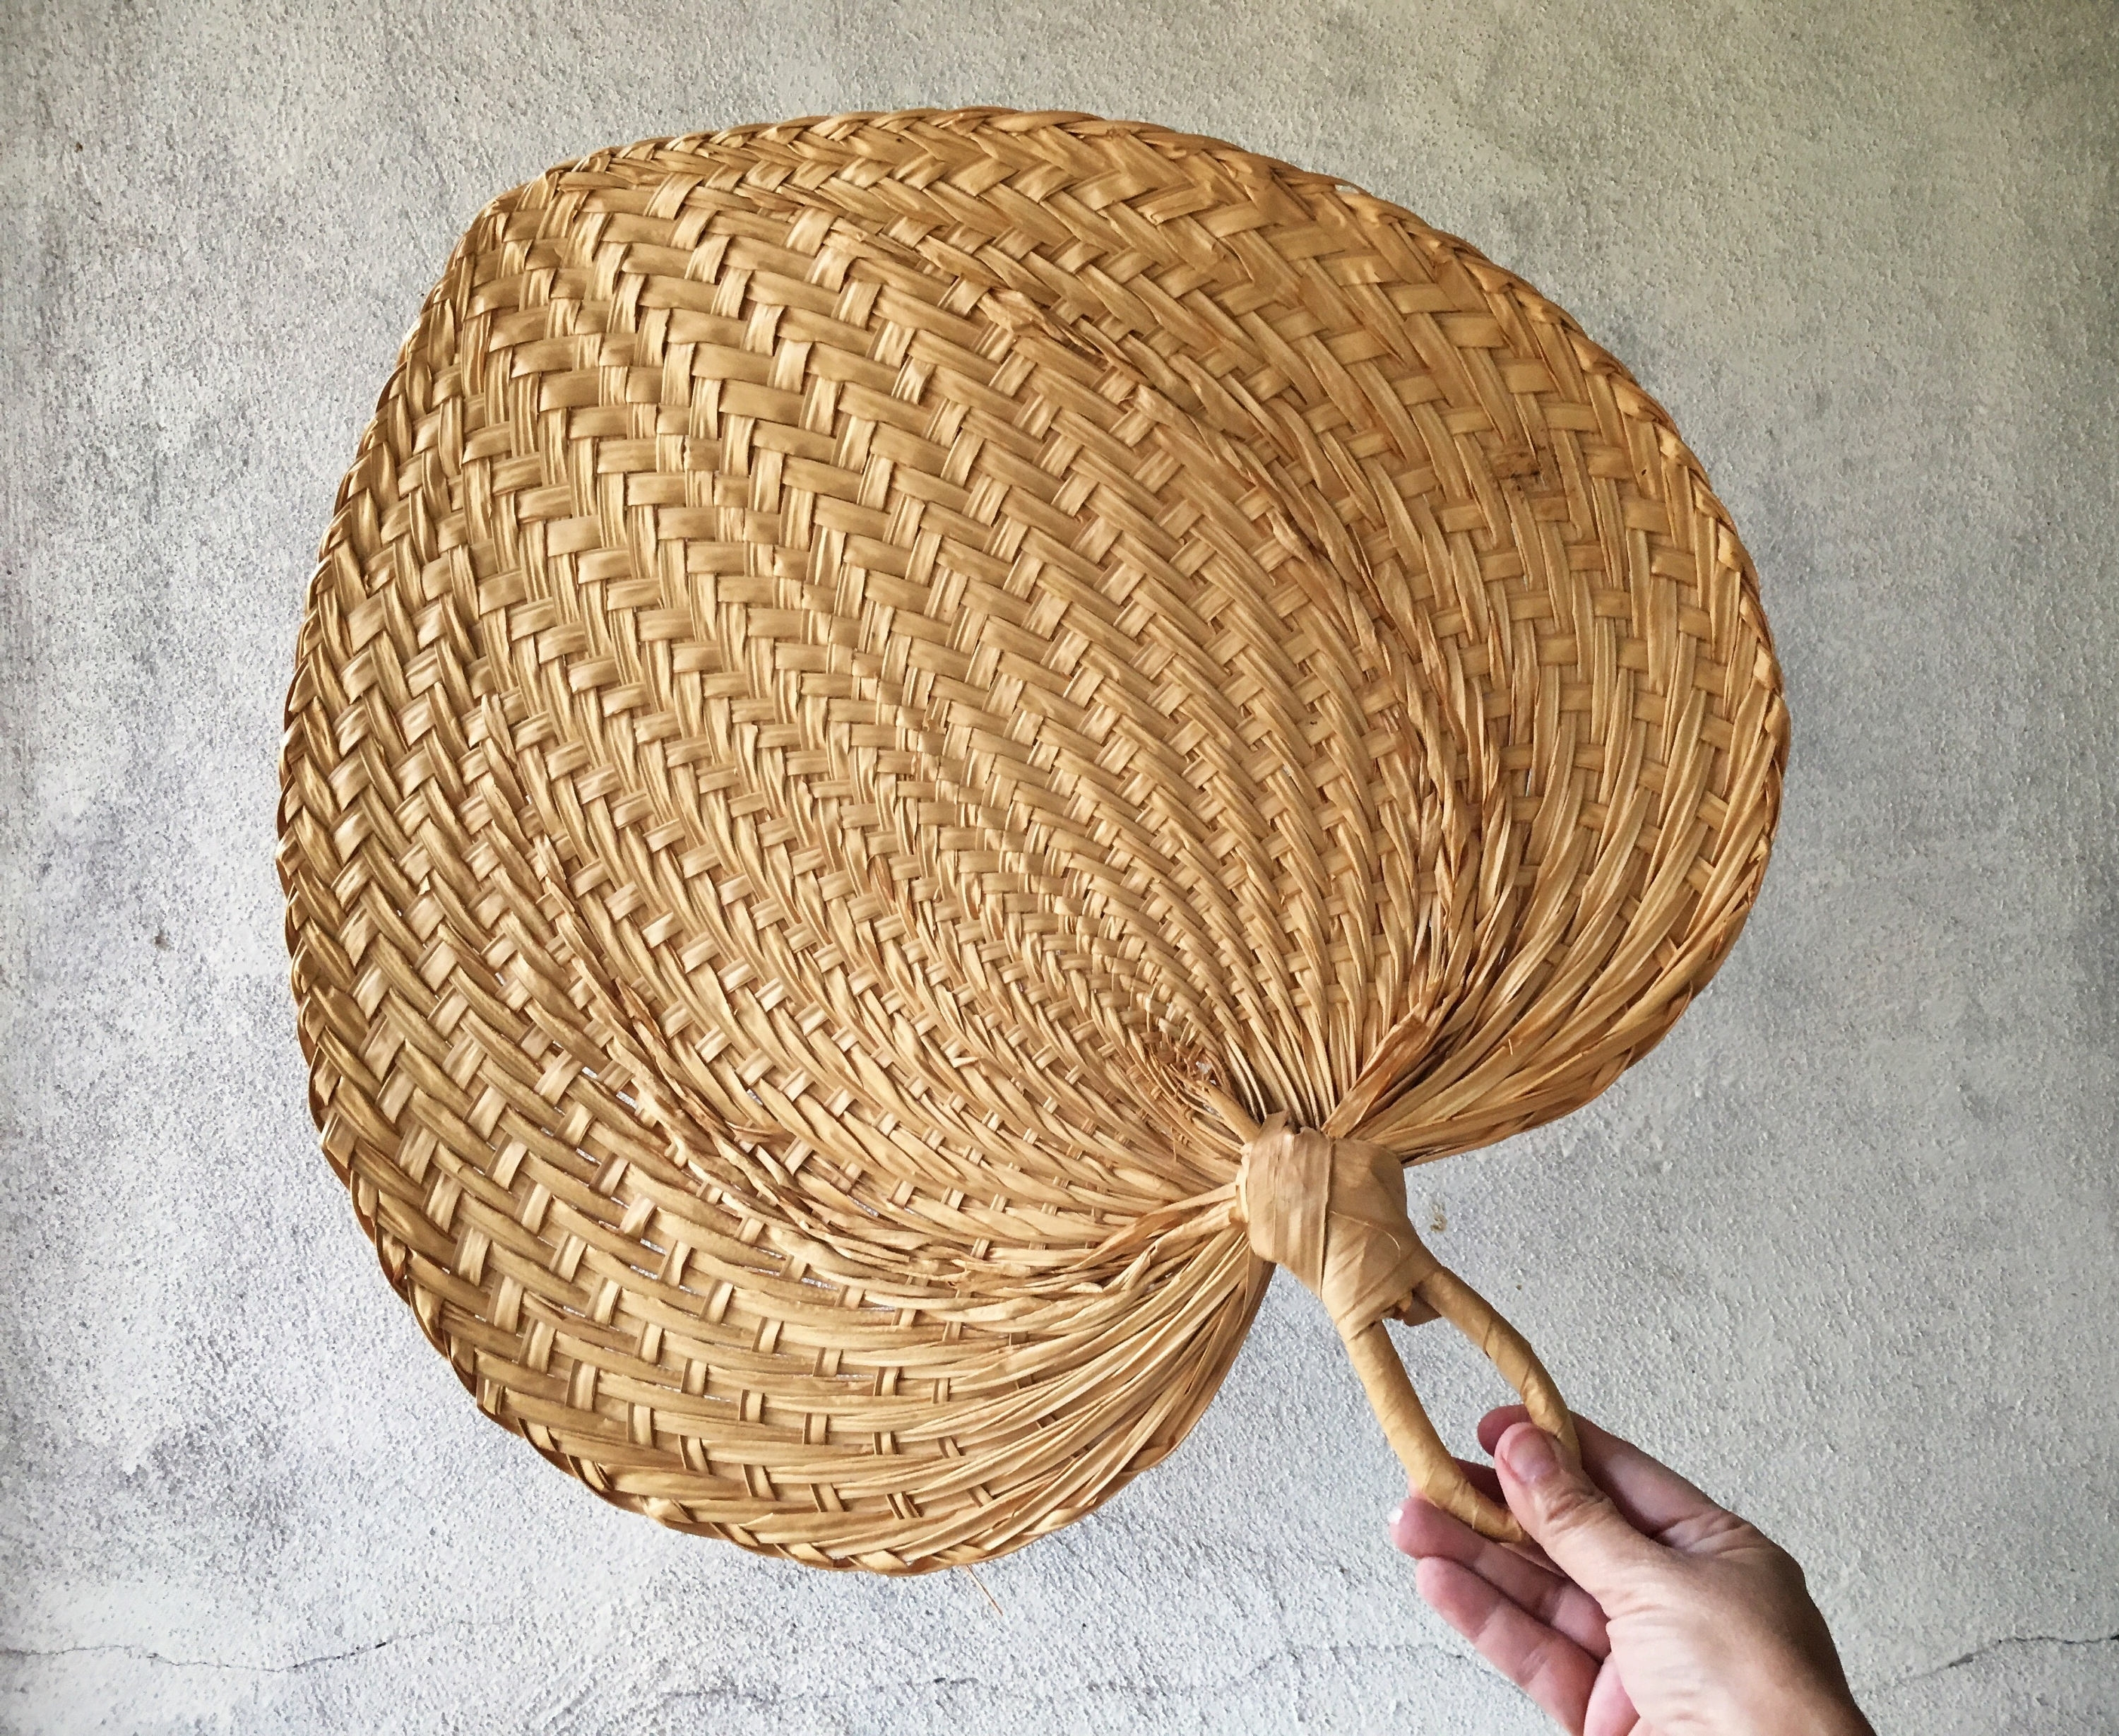 Woven Basket Wall Art Within Most Popular Vintage Woven Straw Fan Wall Hanging Jungalow Decor Wicker Wall Art (View 12 of 20)